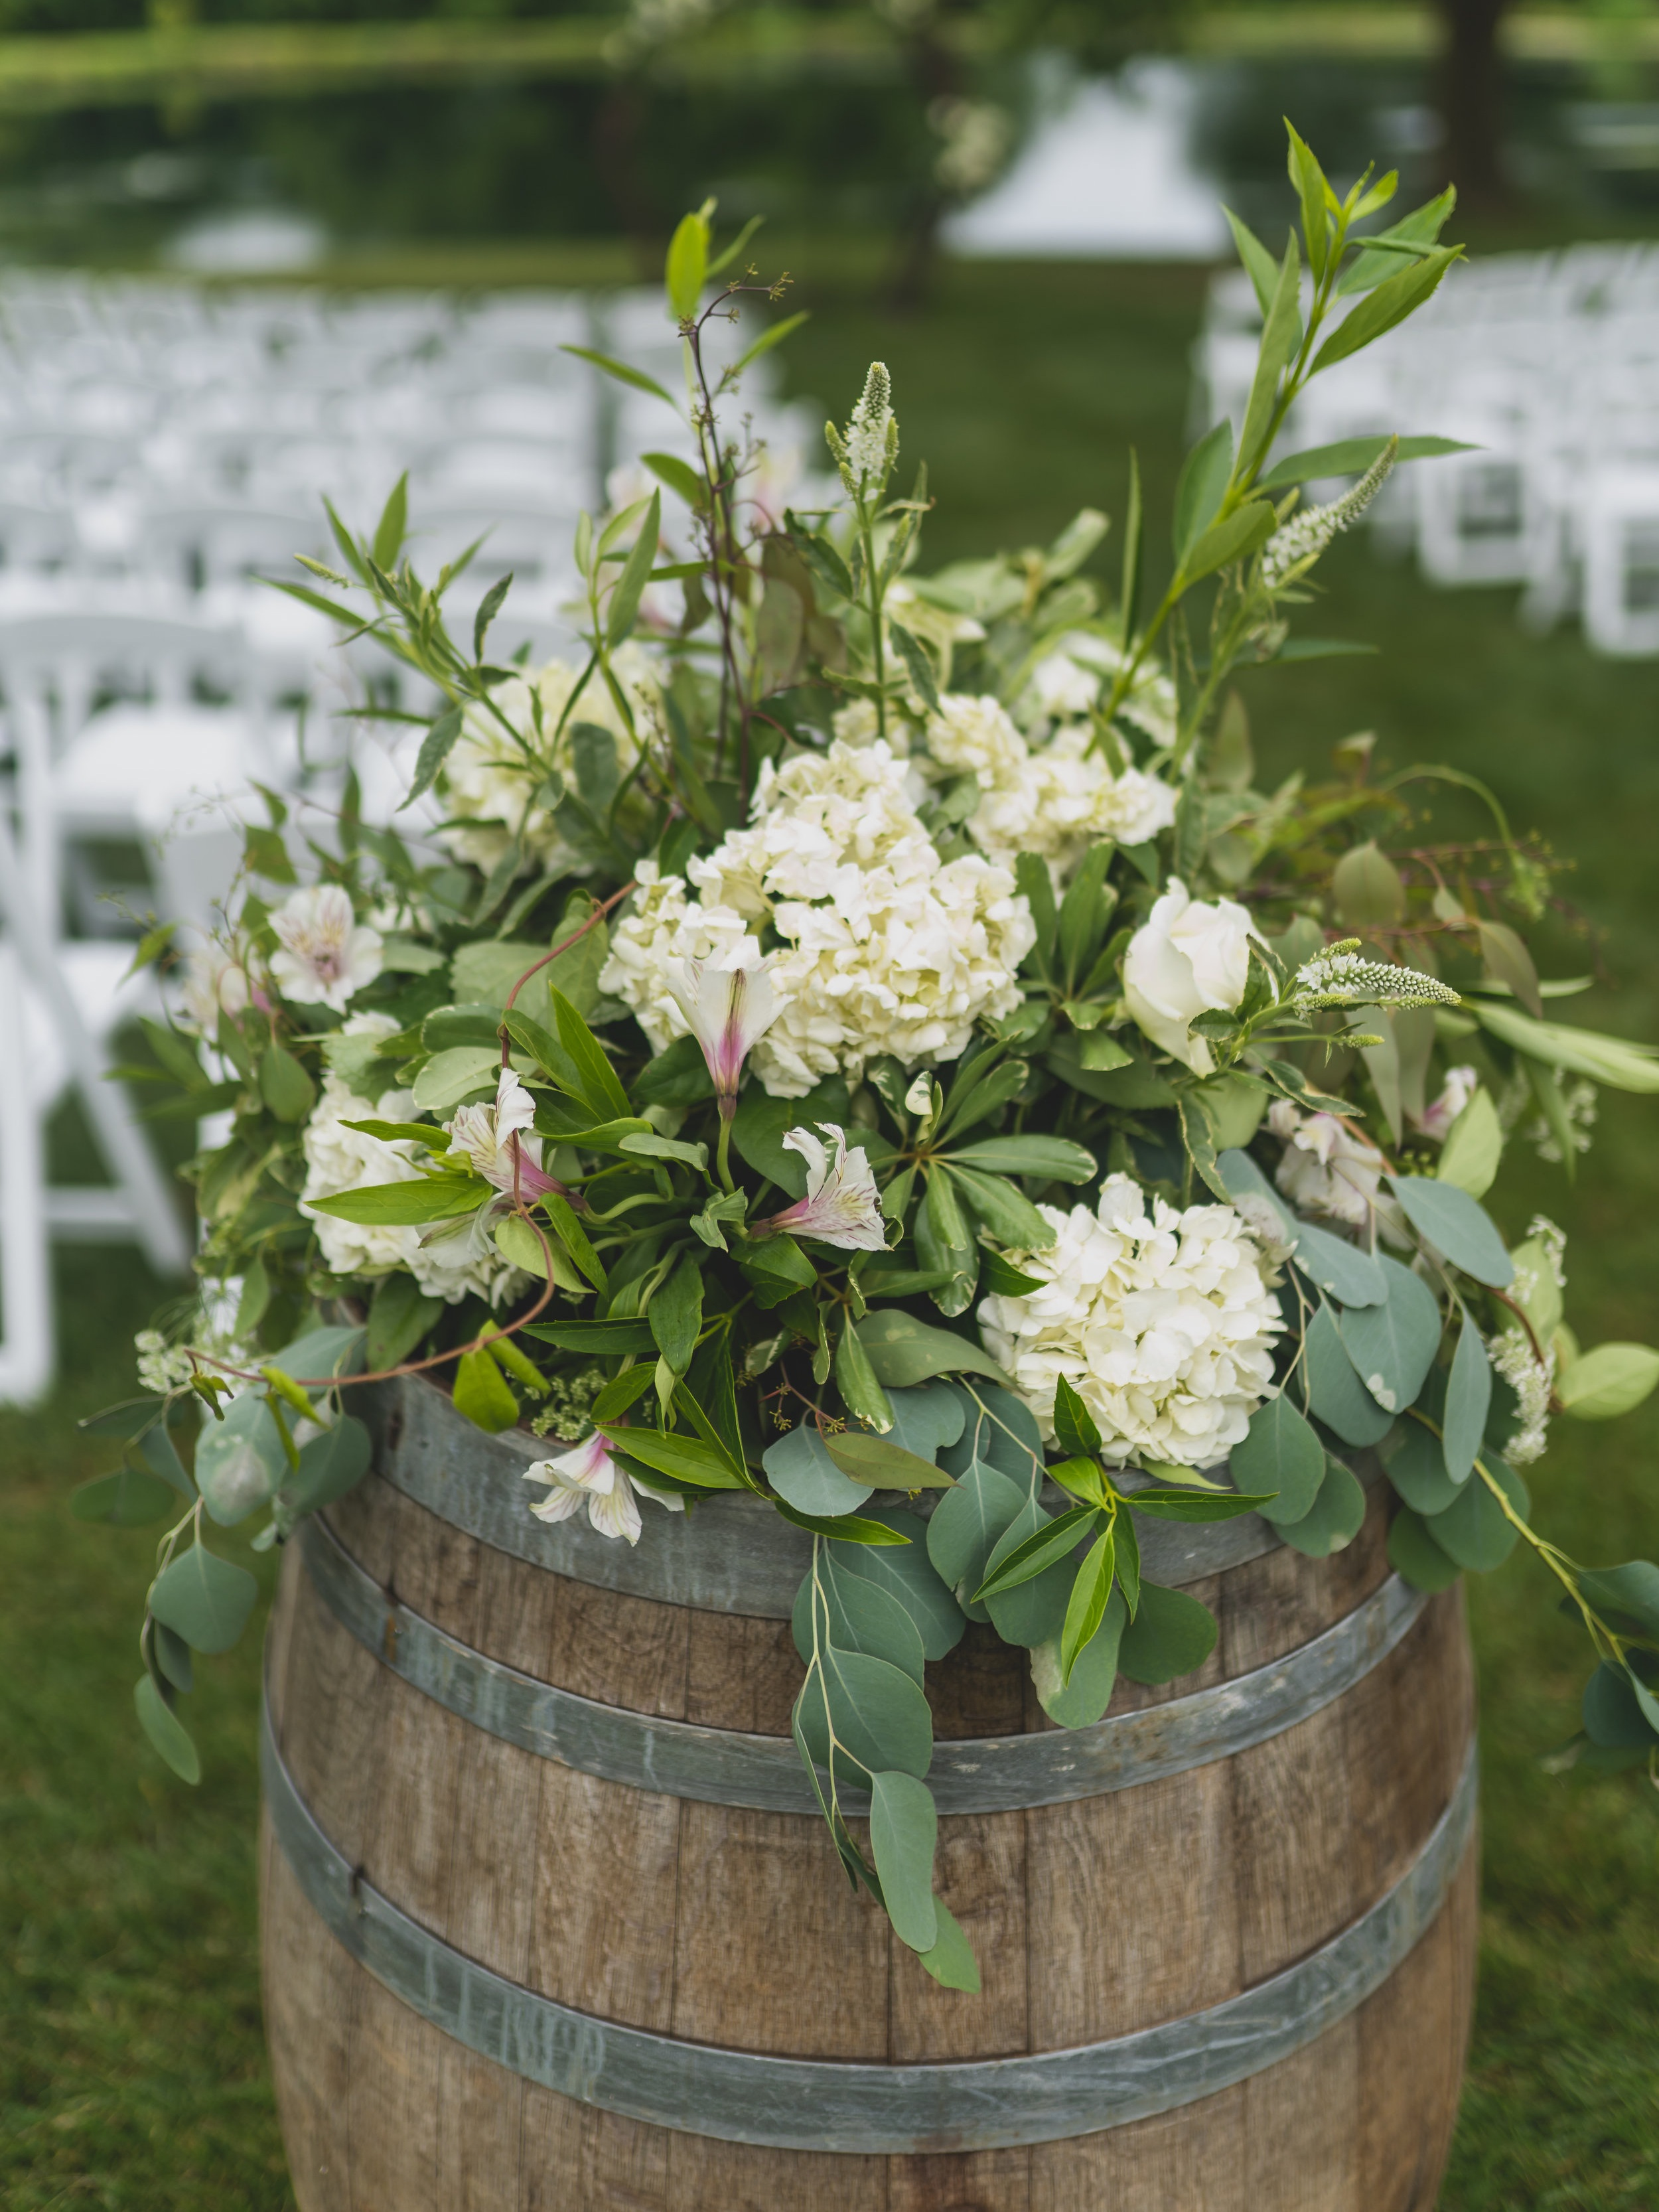 Rustic themed wedding - White flowers in a wooden barrel.